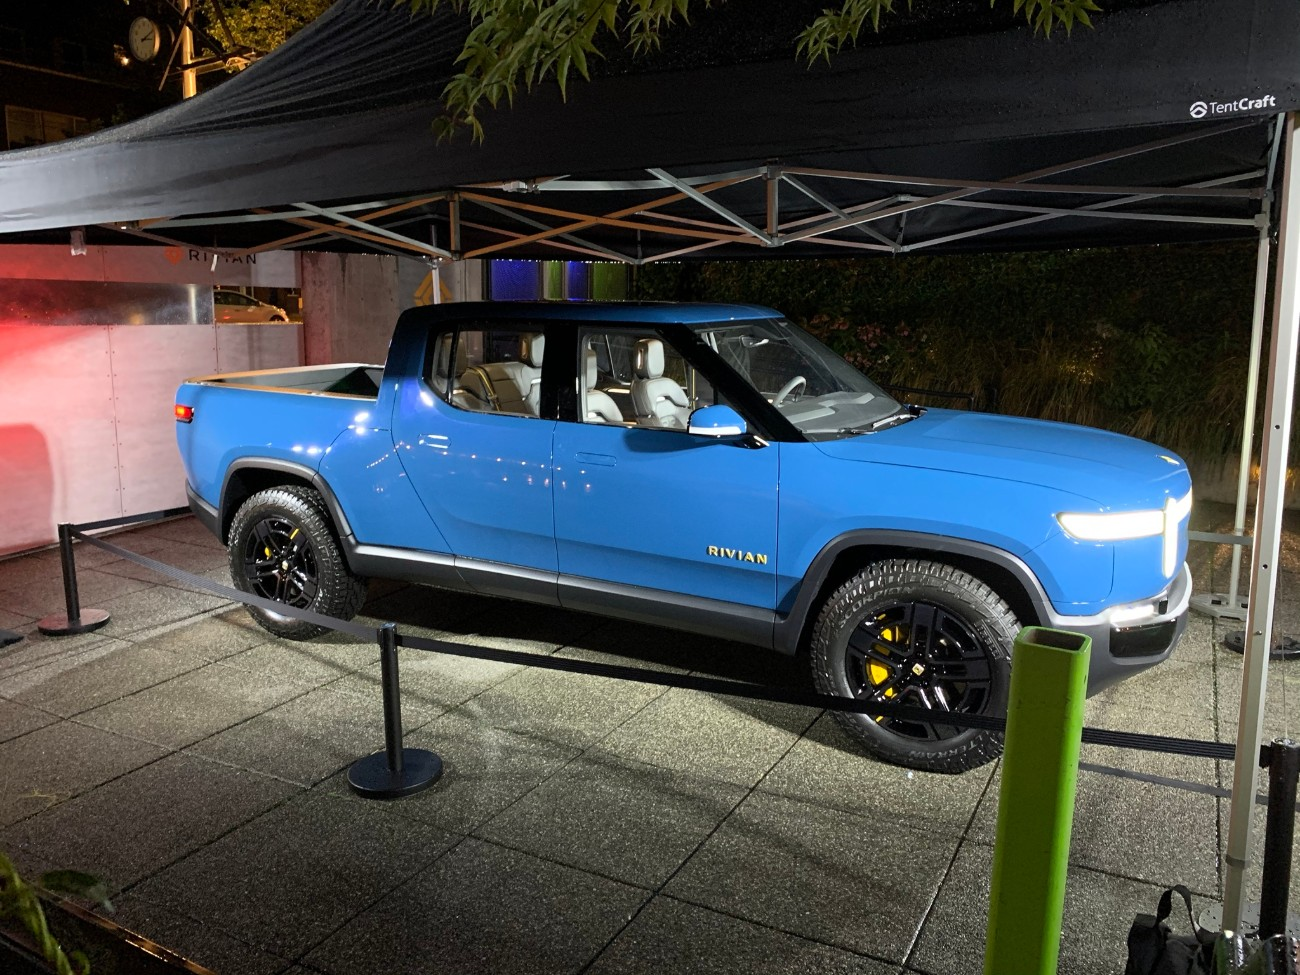 """Tesla's Elon Musk talks Rivian lawsuit, """"They're doing bad things, so we sued them"""""""